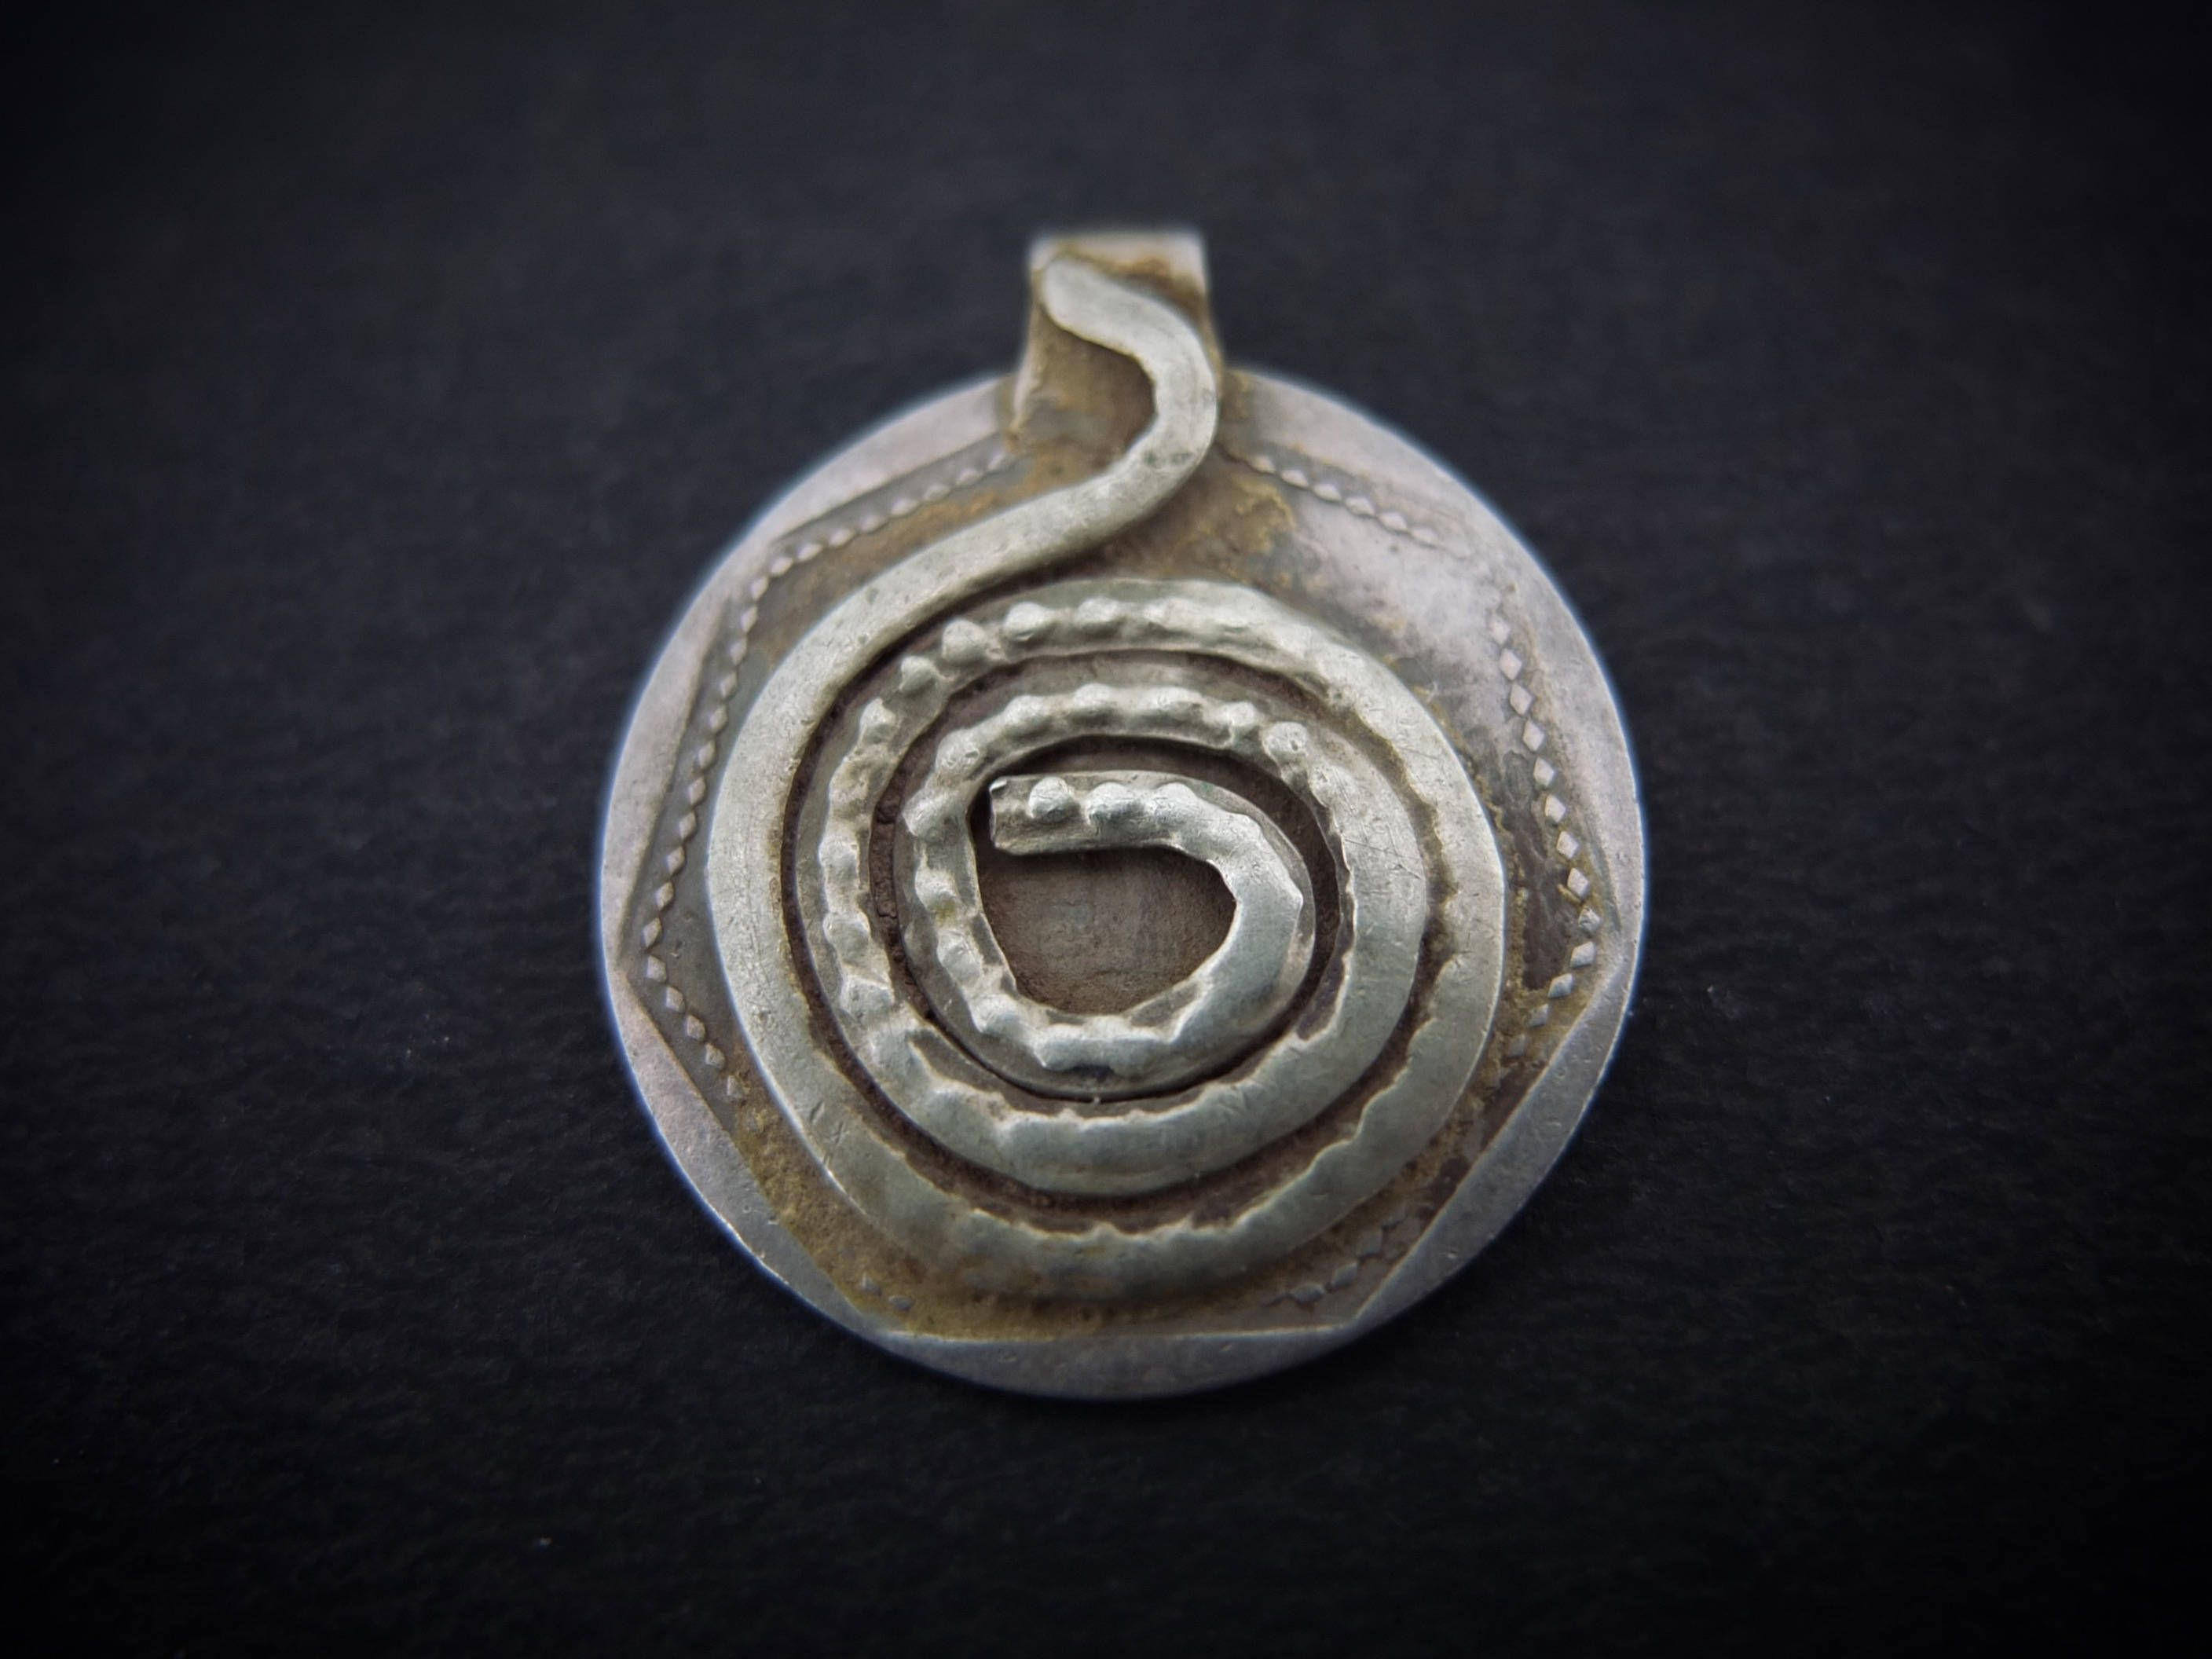 Naga snake pendant on old coin from india tribal gypsy jewelry naga snake pendant on old coin from india tribal gypsy jewelry rajasthan ethnic pendant aloadofball